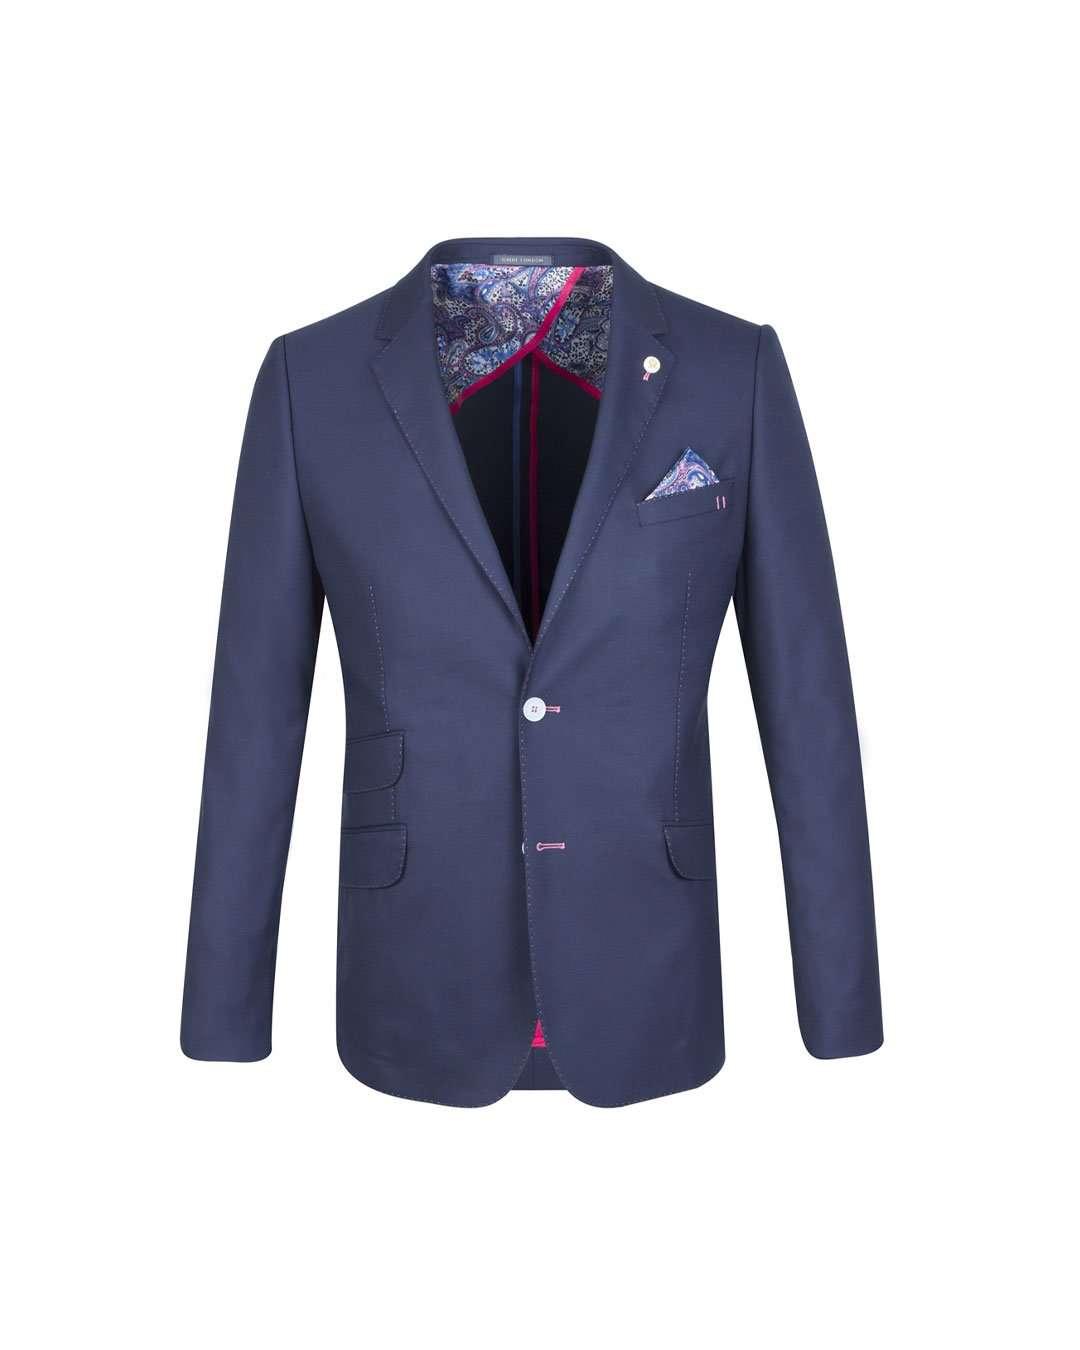 GUIDE LONDON Stretch Half Linen Blazer - Revolver Menswear Bawtry